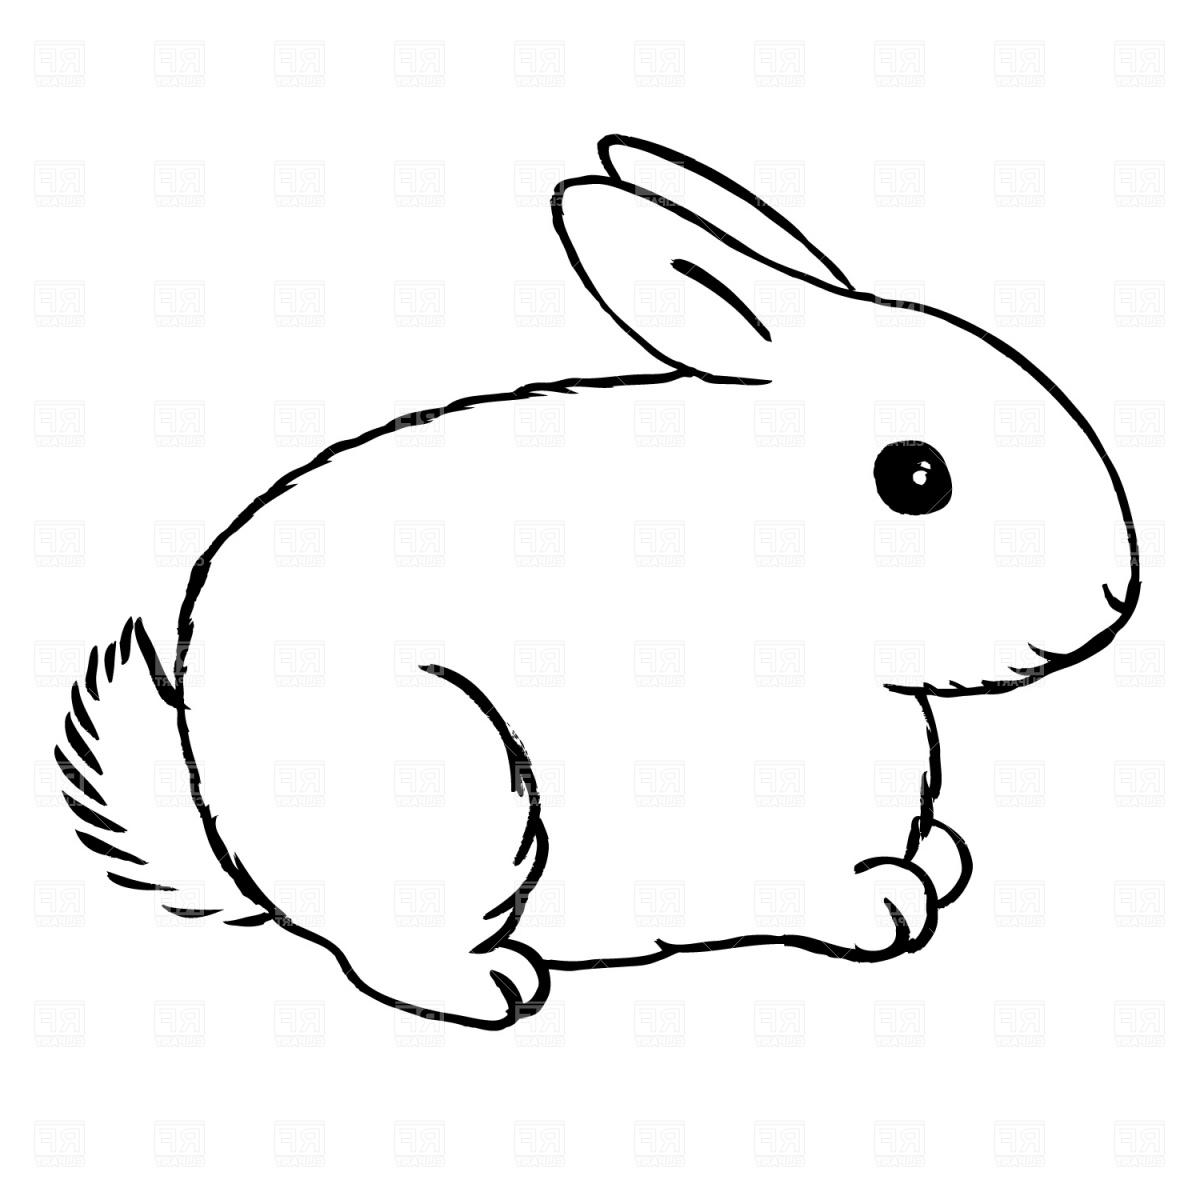 Bunny Clipart Black And White | Free download on ClipArtMag |Cute Rabbit Clipart Black And White